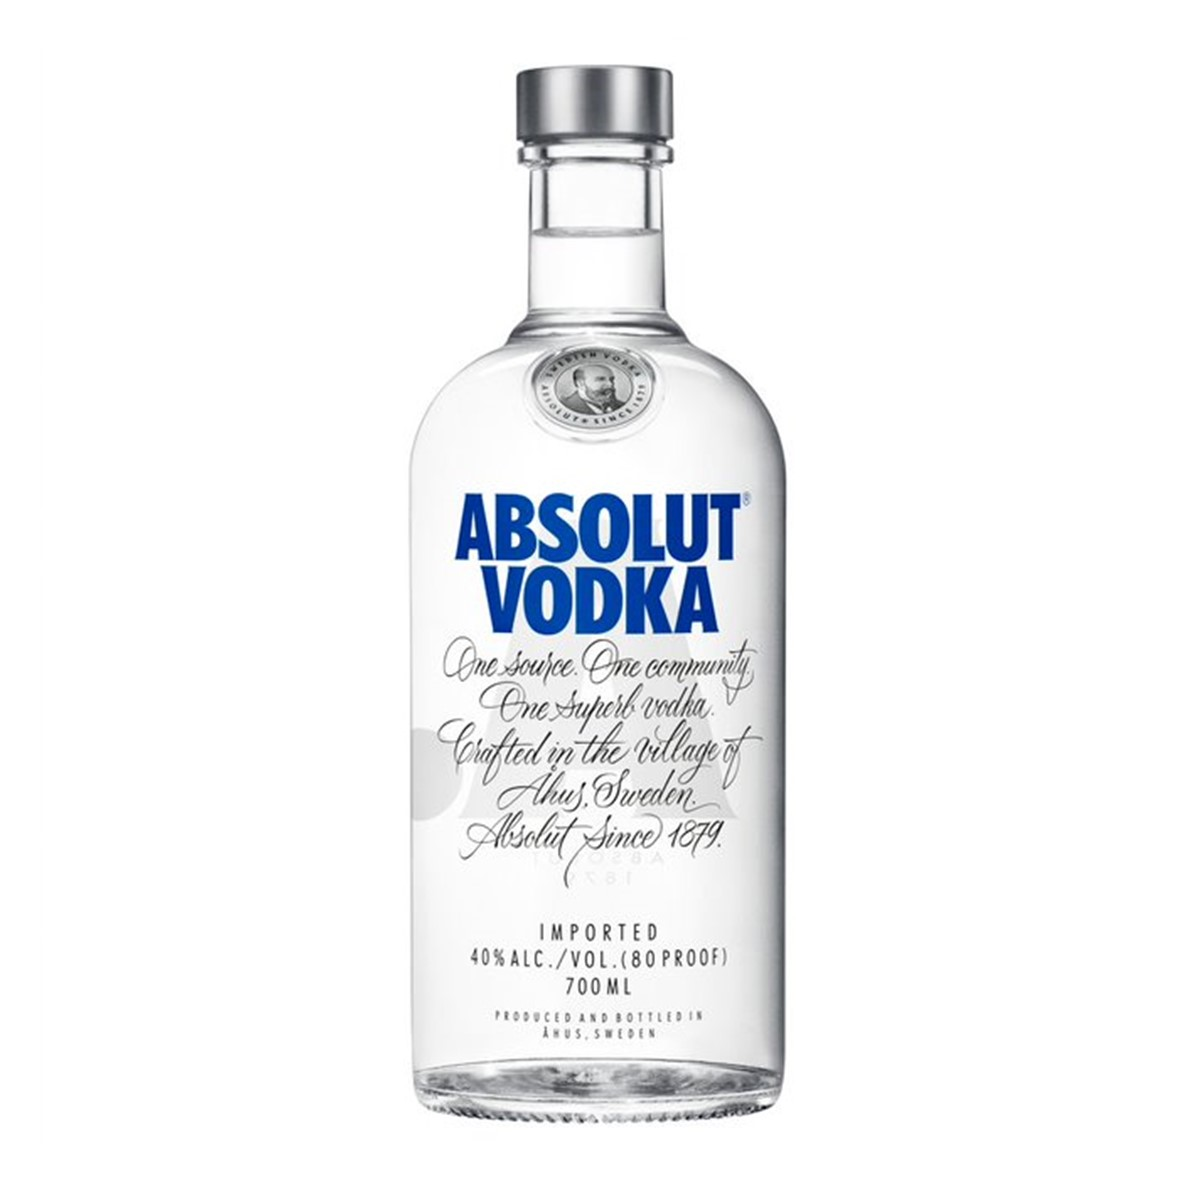 Absolut Vodka - 70cl bottle